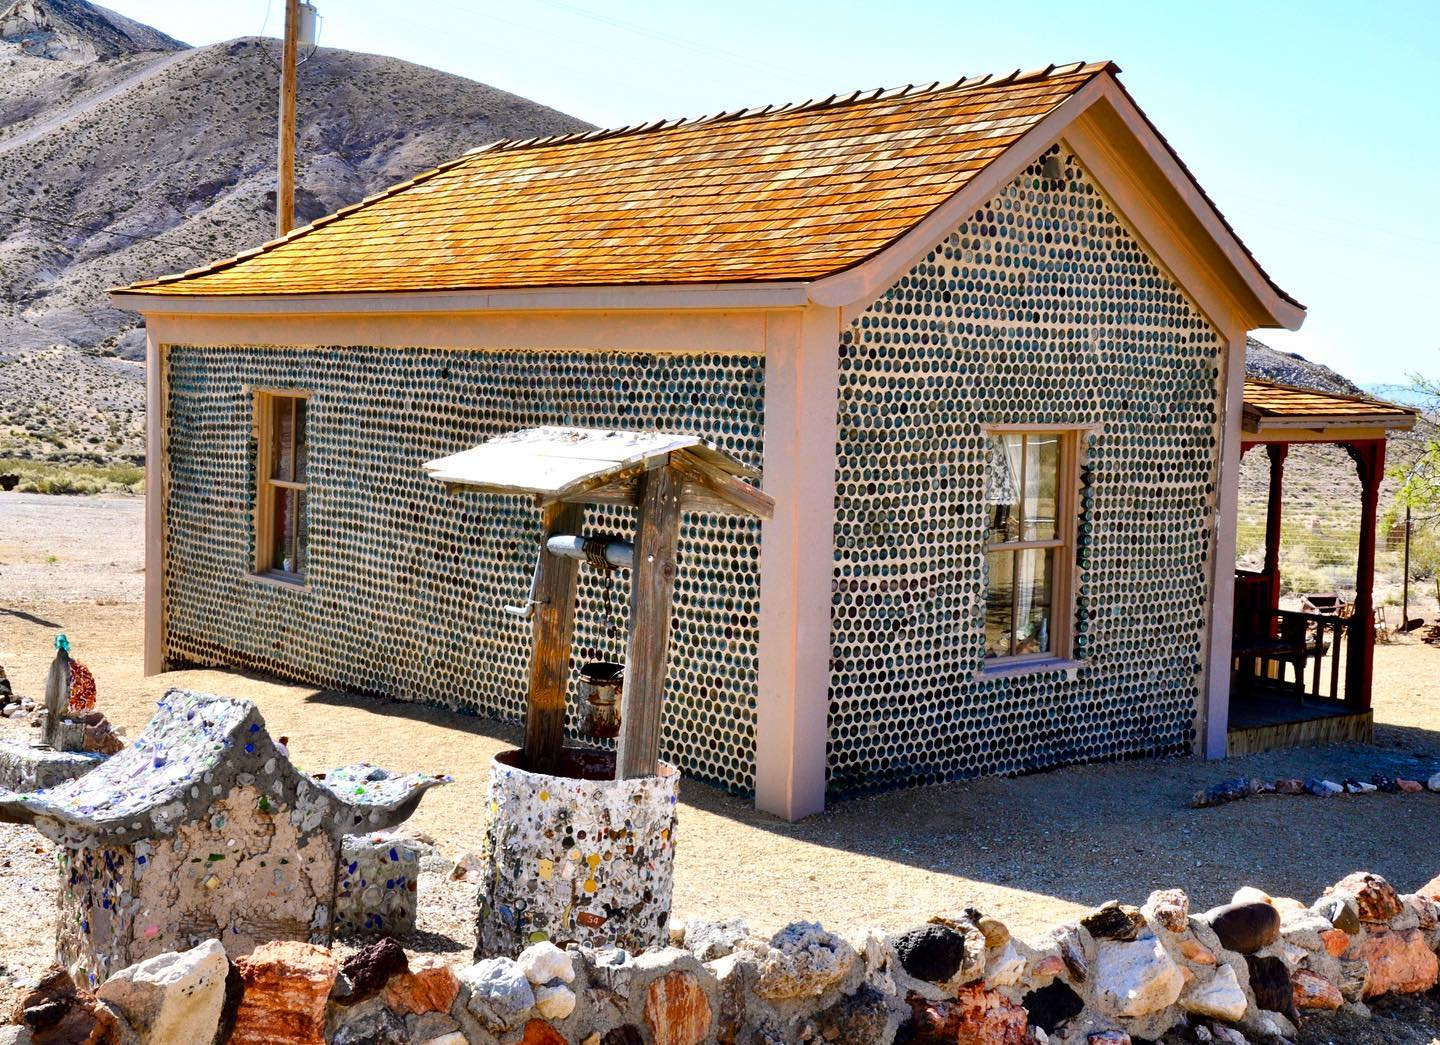 What to do with about 50.000 empty bottles? Bottle House, Rhyolite #roadtripusa🇺🇸 #usatravels #travelphotography #usa #usalove #inthemiddleofnowhere #desert #architecture #architecturephotography #rhyolite #rhyoliteghosttown #ghosttownsofamerica #ghosttownsofnevada #bottlehouse #photospot